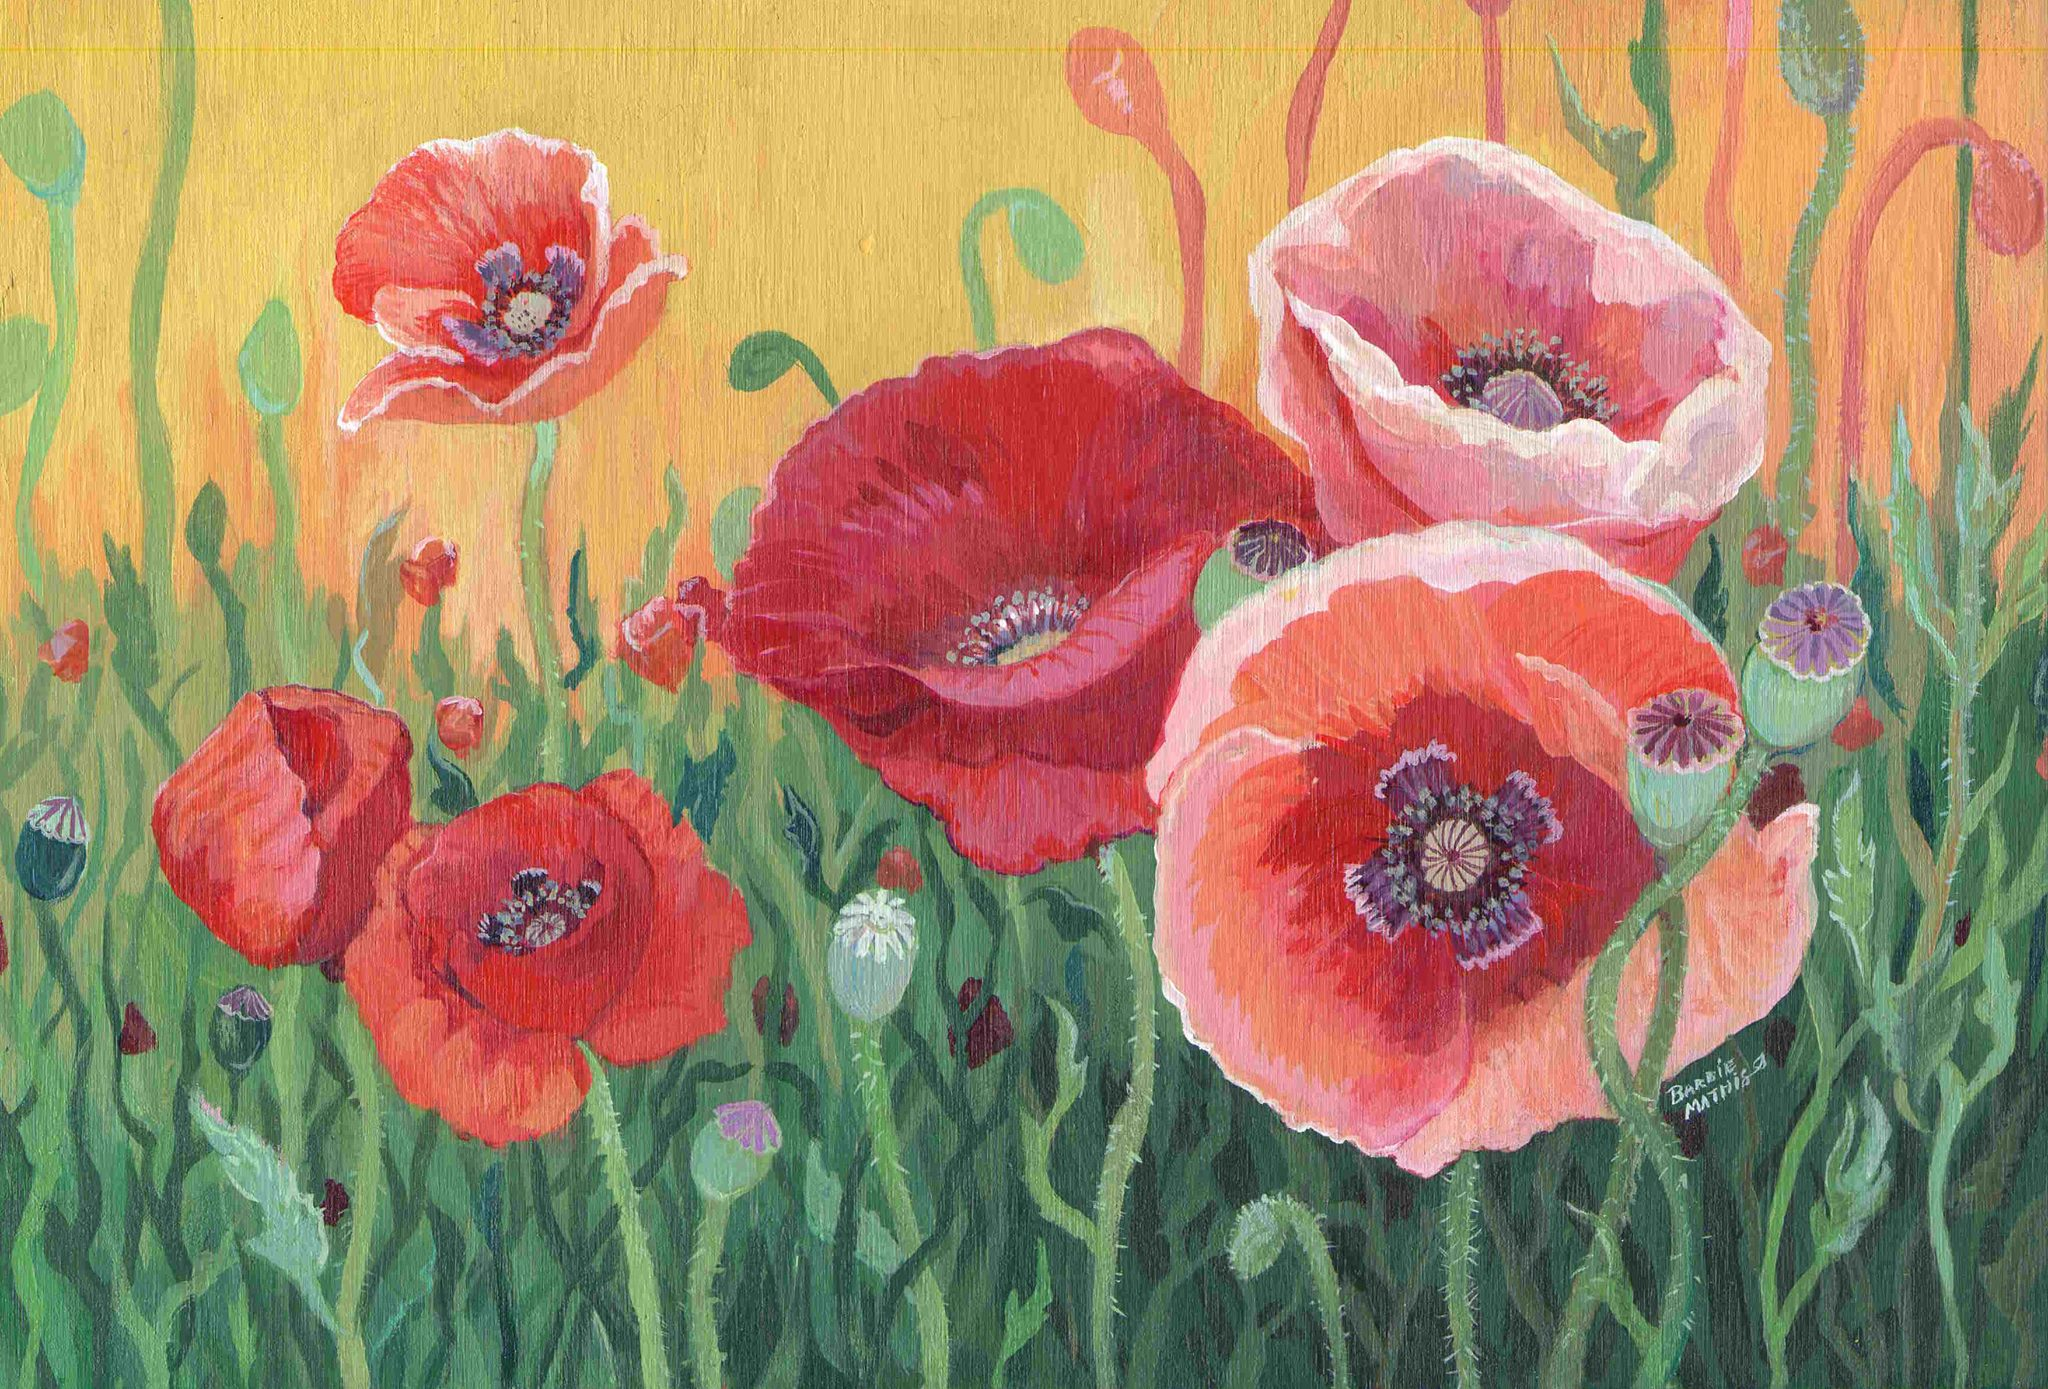 """Poppies"" - Acrylic on wood panel - artwork up for auction from Barbie Smith Mathis"